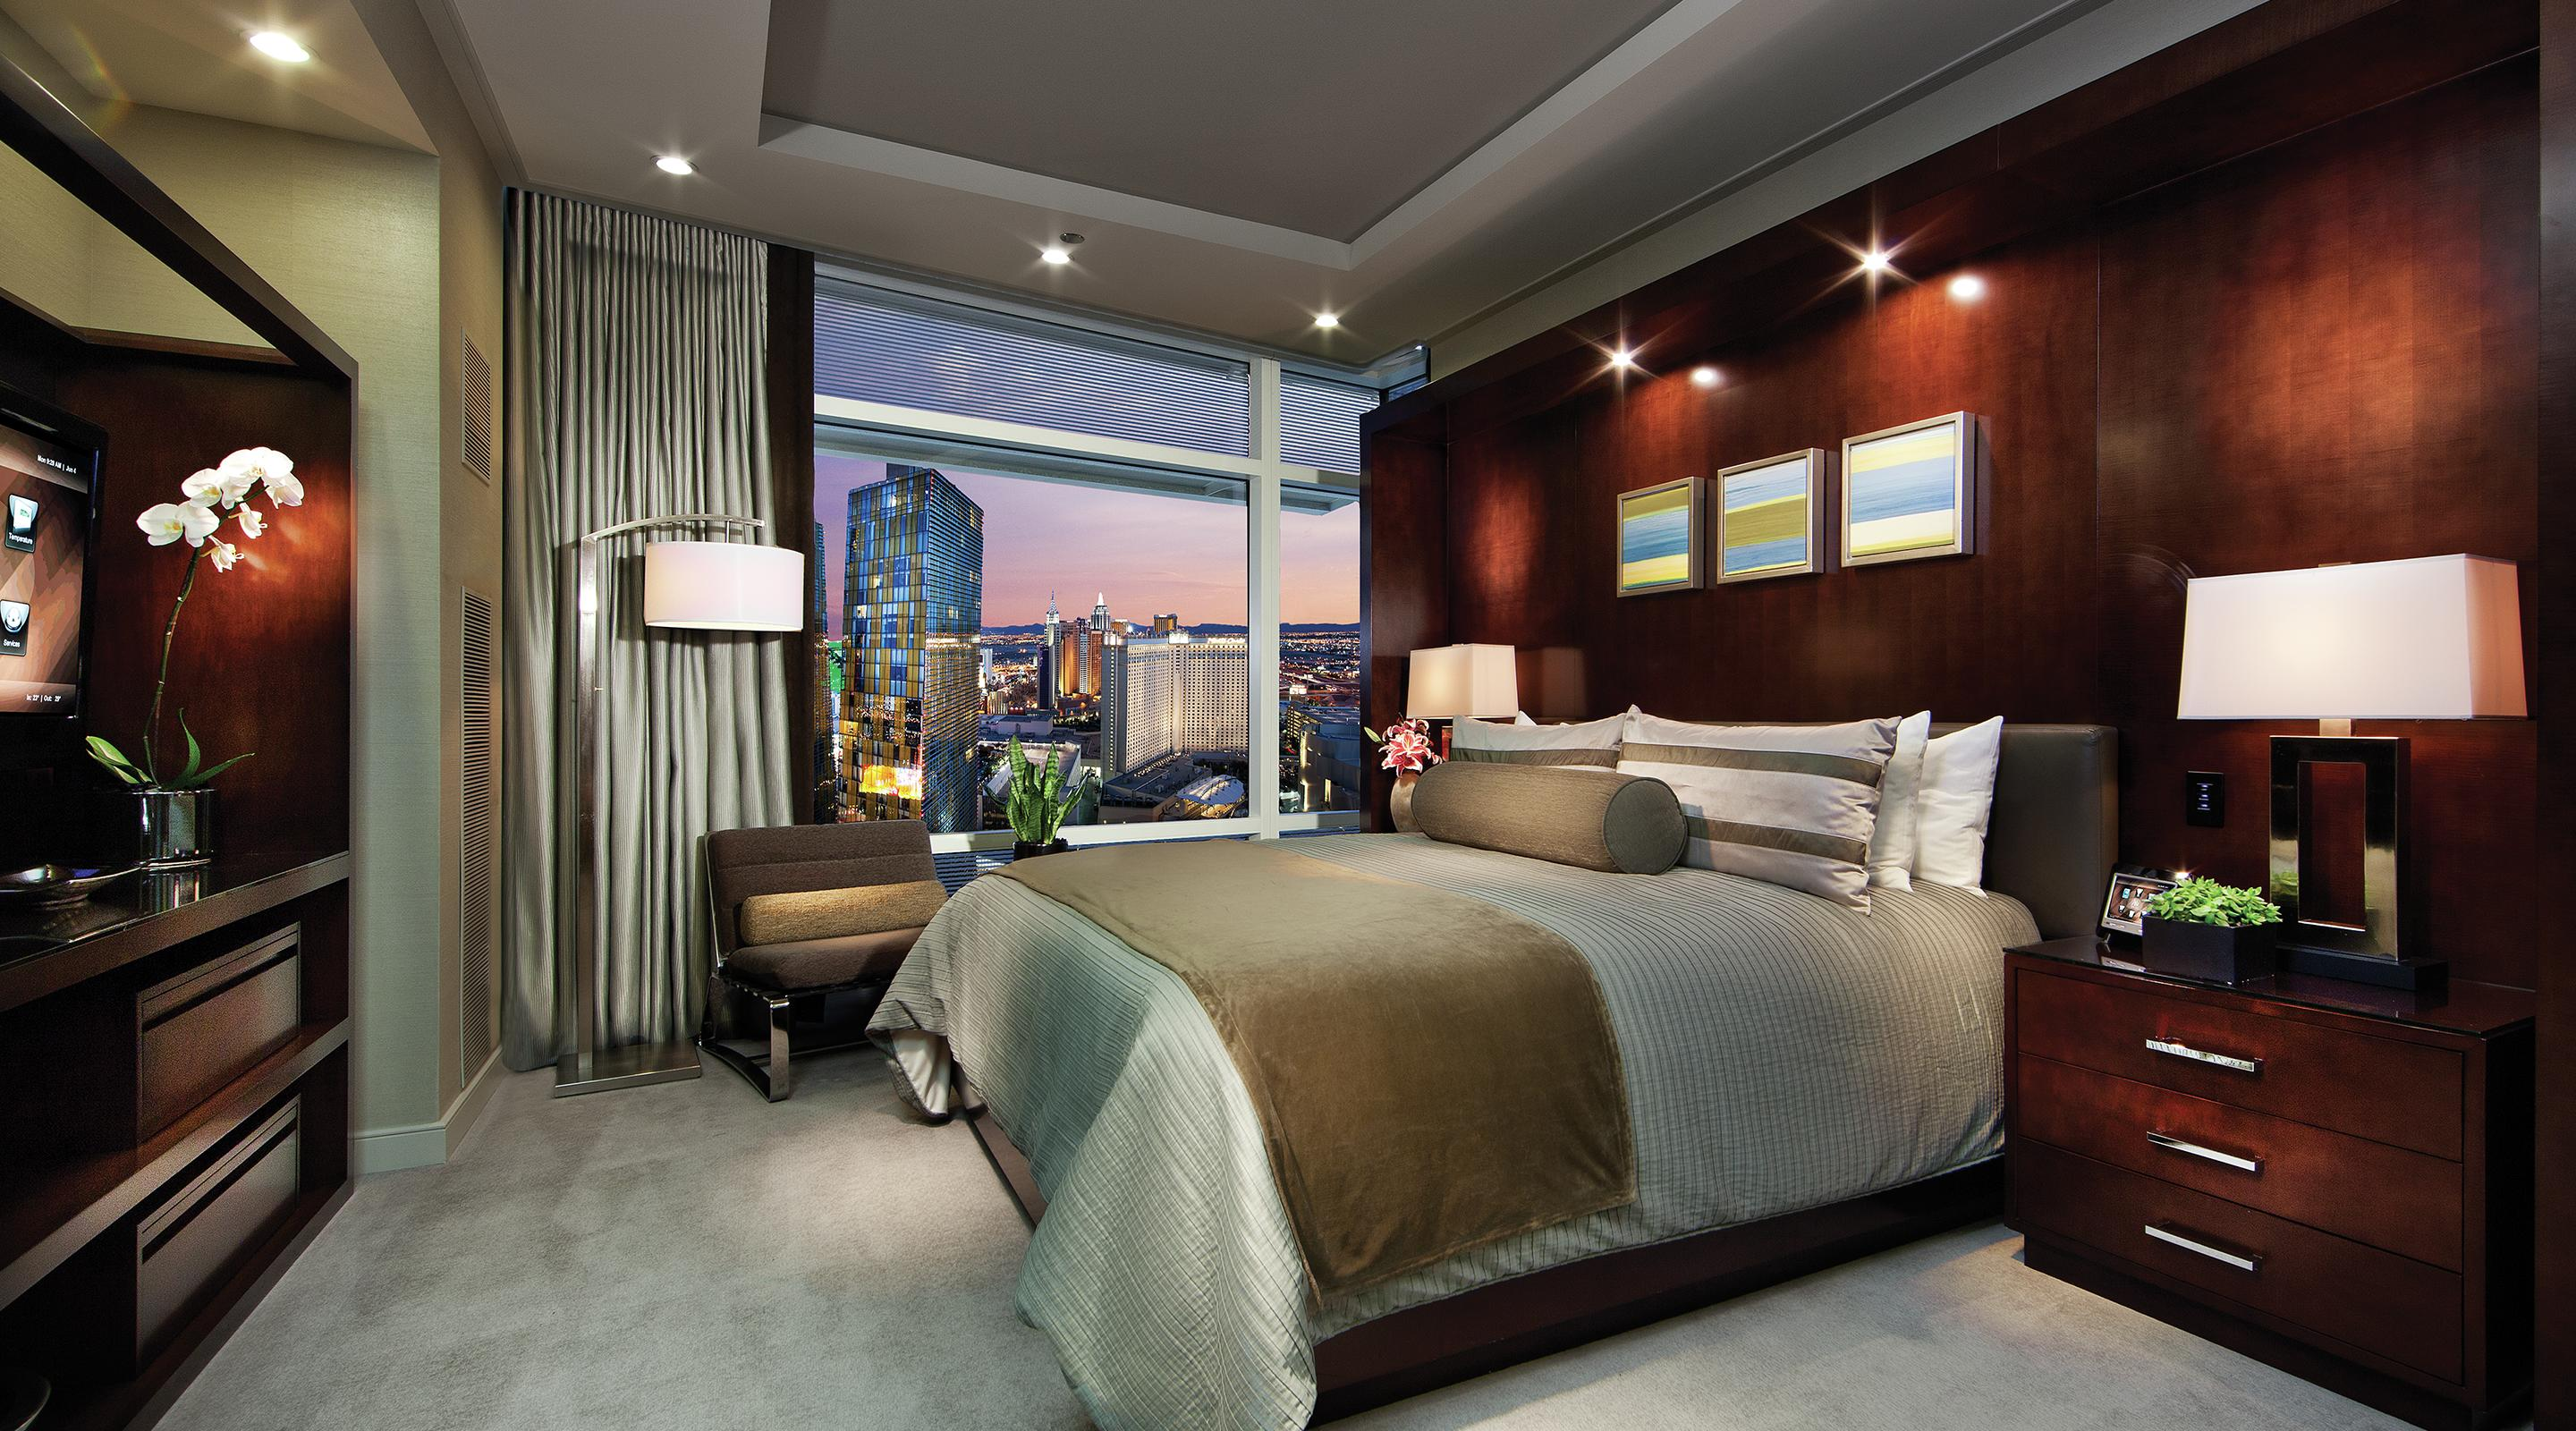 Las Vegas Hotels Suites 3 Bedroom Two Bedrdoom Penthouse Suite In Las Vegas Aria Resort Casino